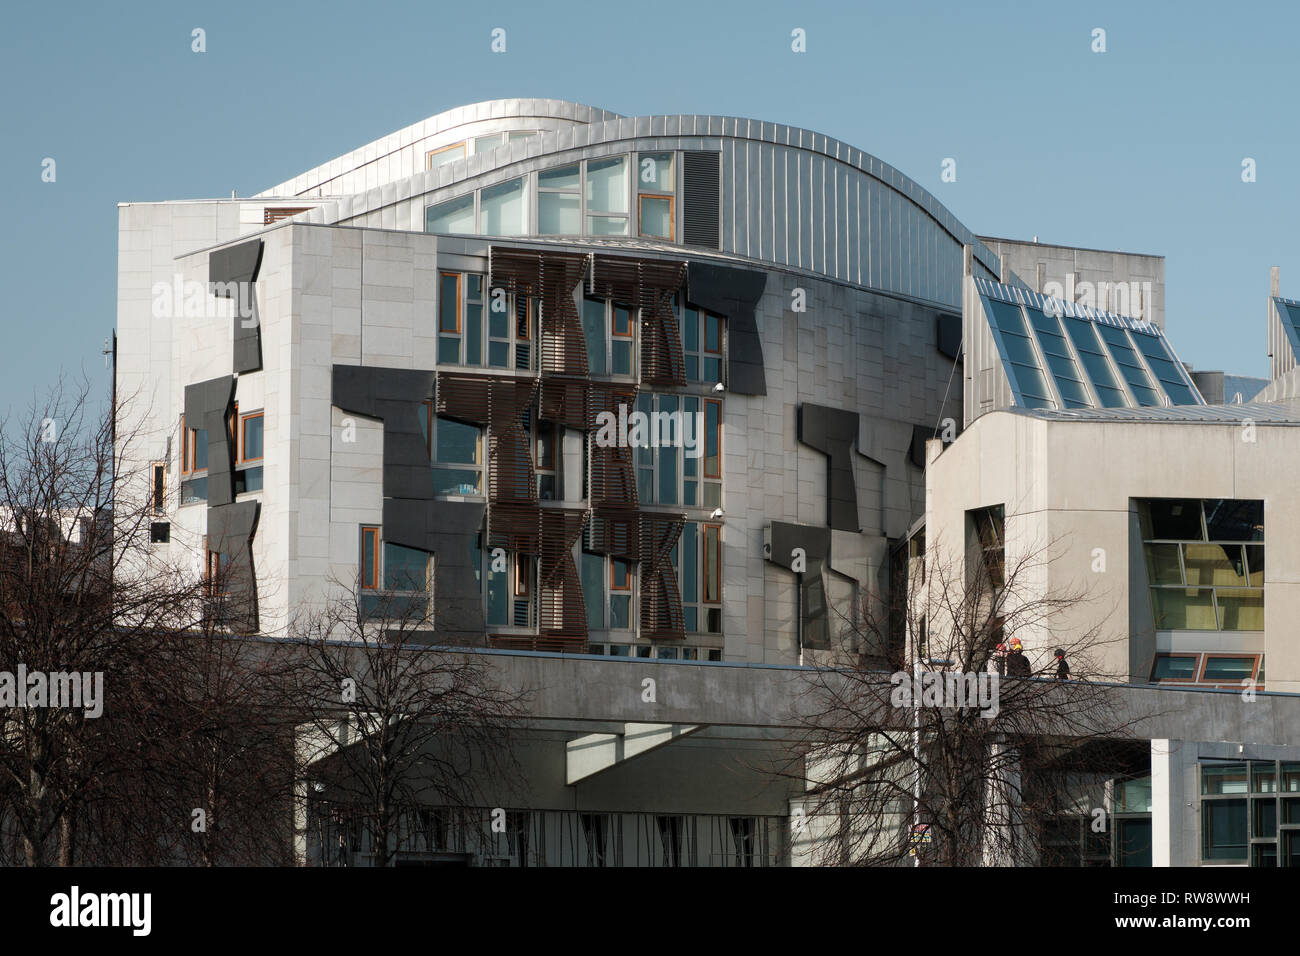 Exterior of the front of the Scottish Parliament Building at Holyrood in Edinburgh on a cloudy day - Stock Image